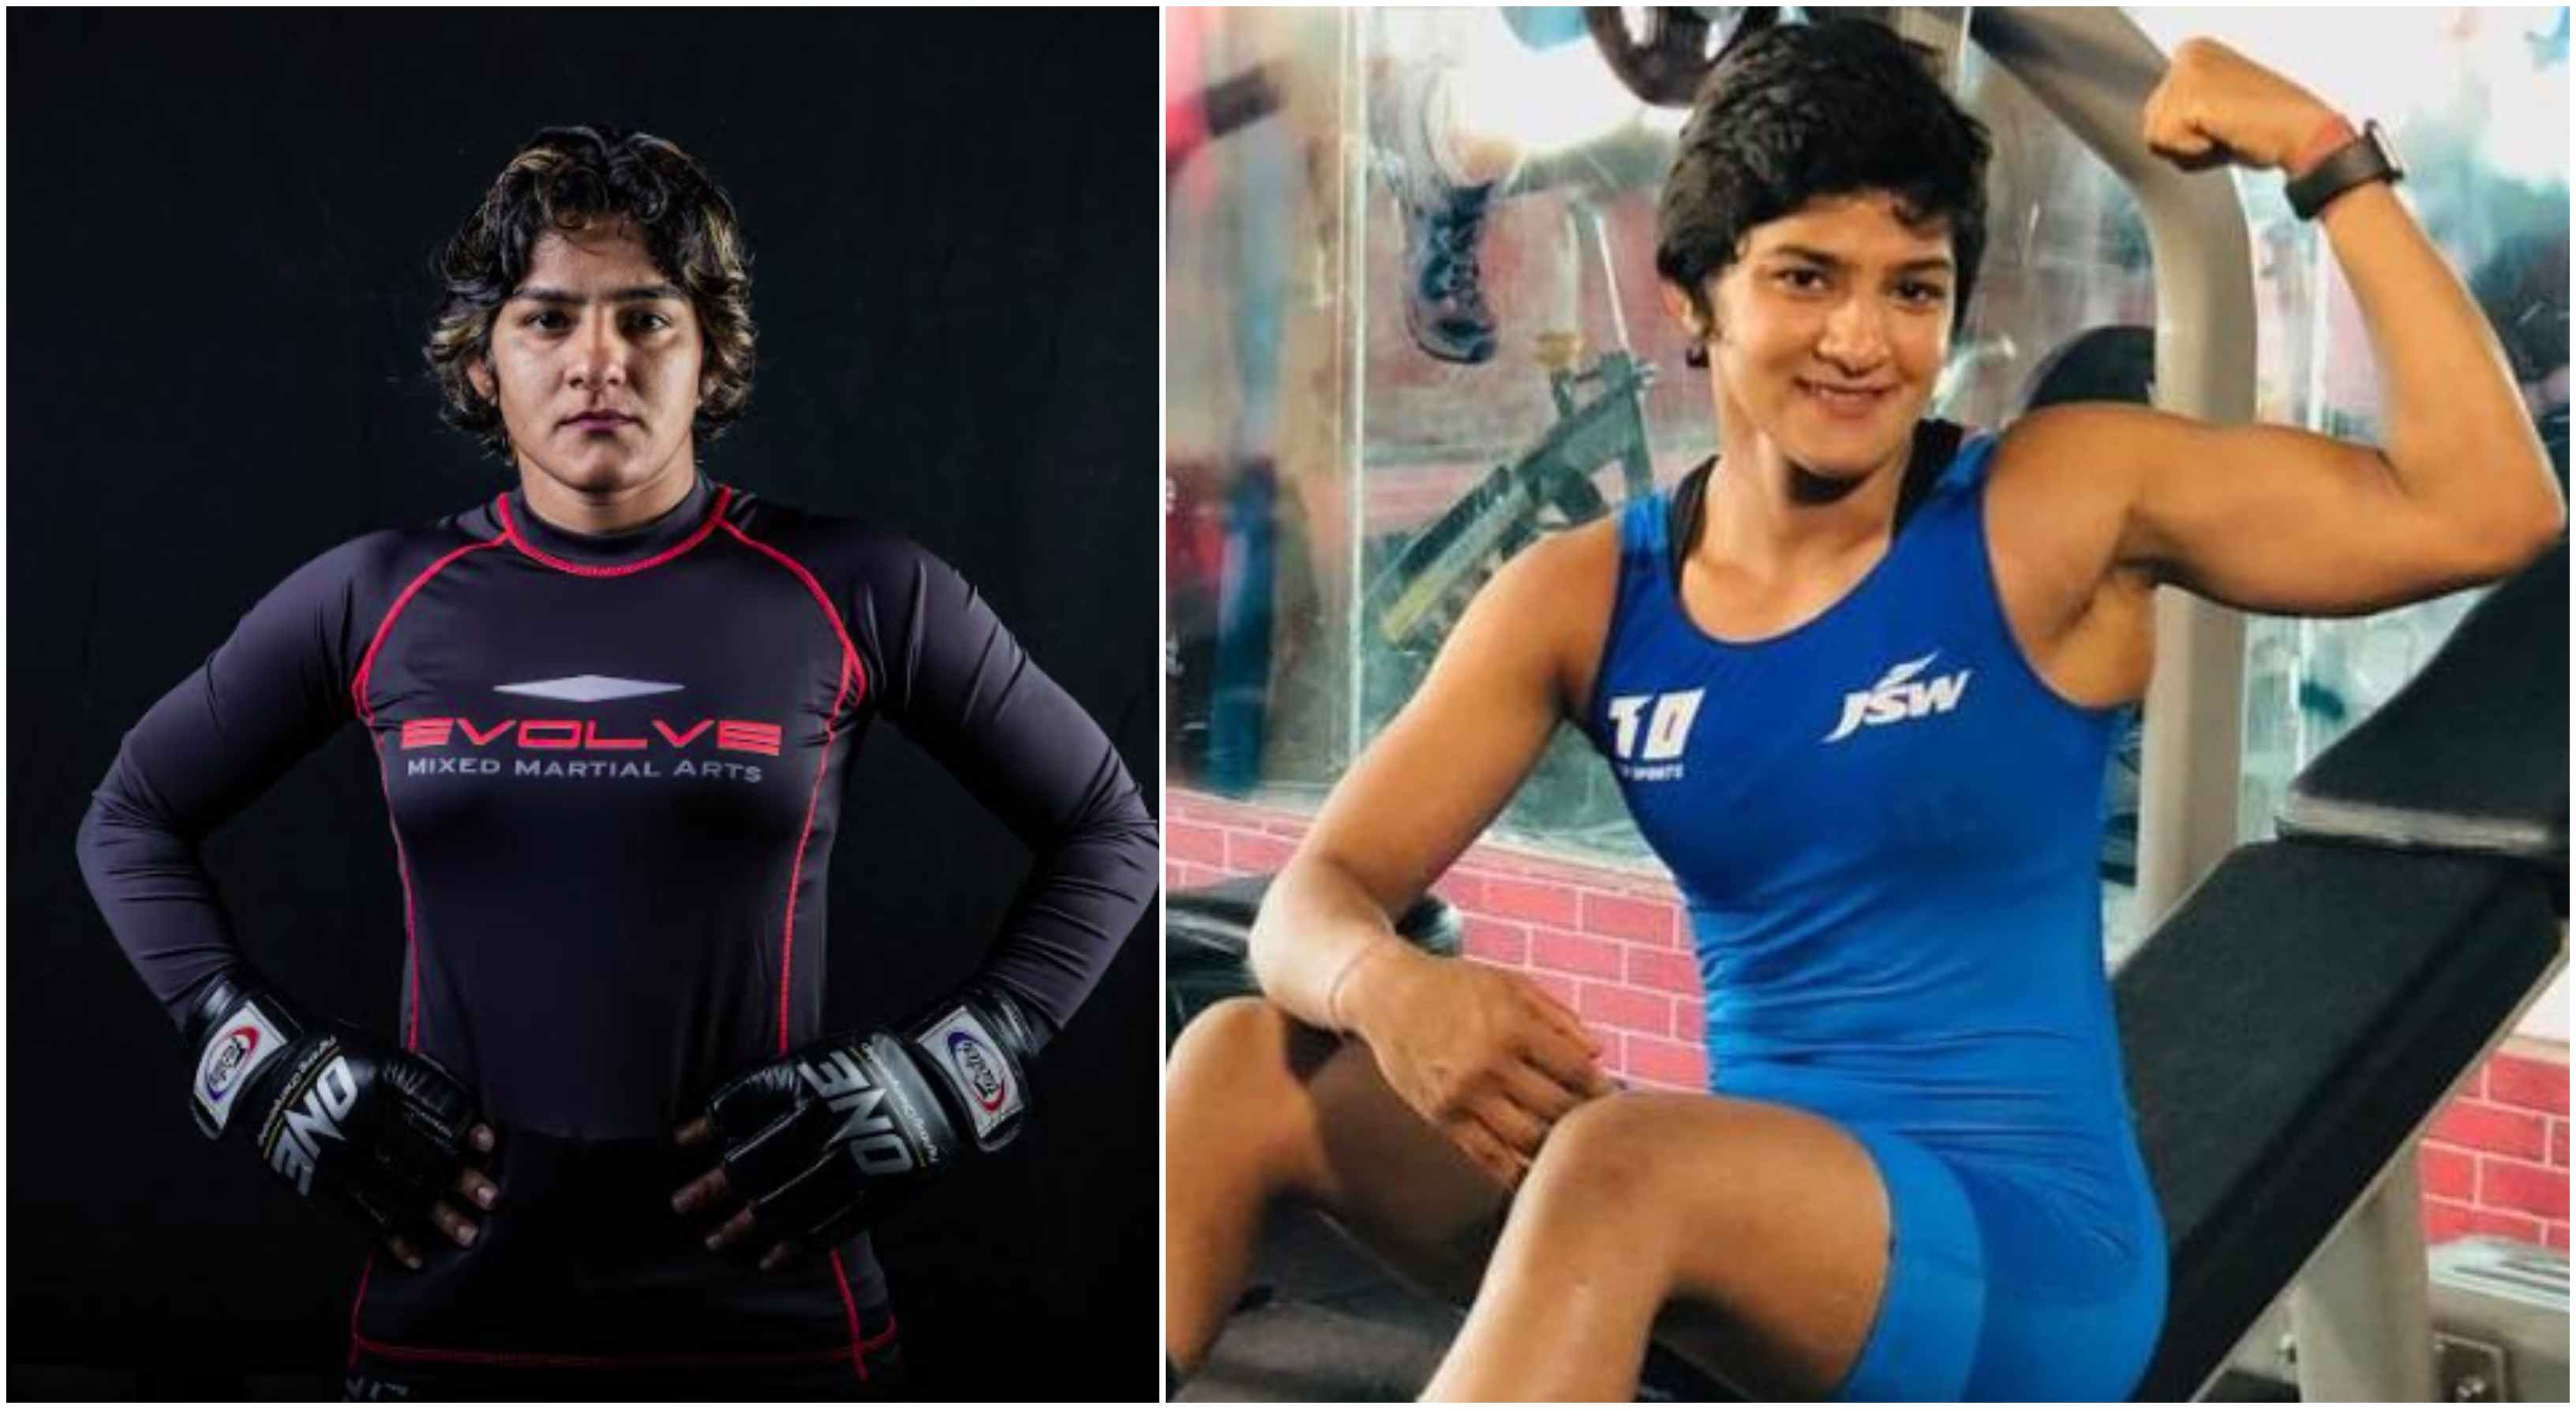 Ritu Phogat to make her MMA debut at ONE championship on 16th November in Beijing - Ritu